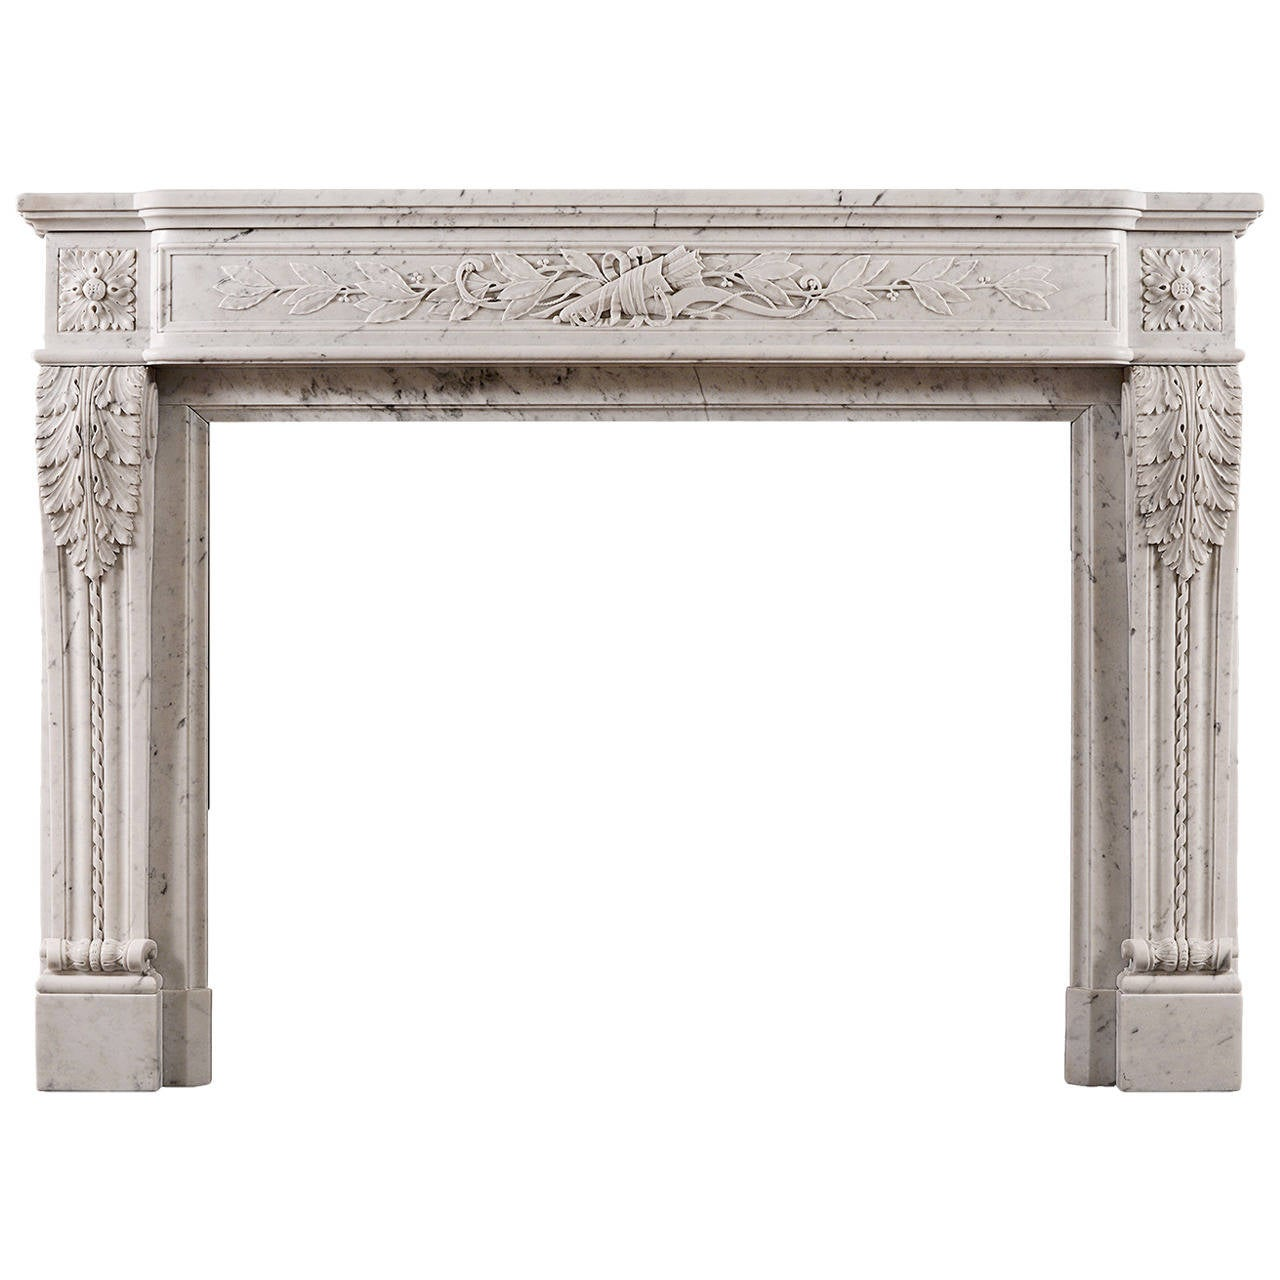 Louis XVI Style French Antique Fireplace in Carrara Marble